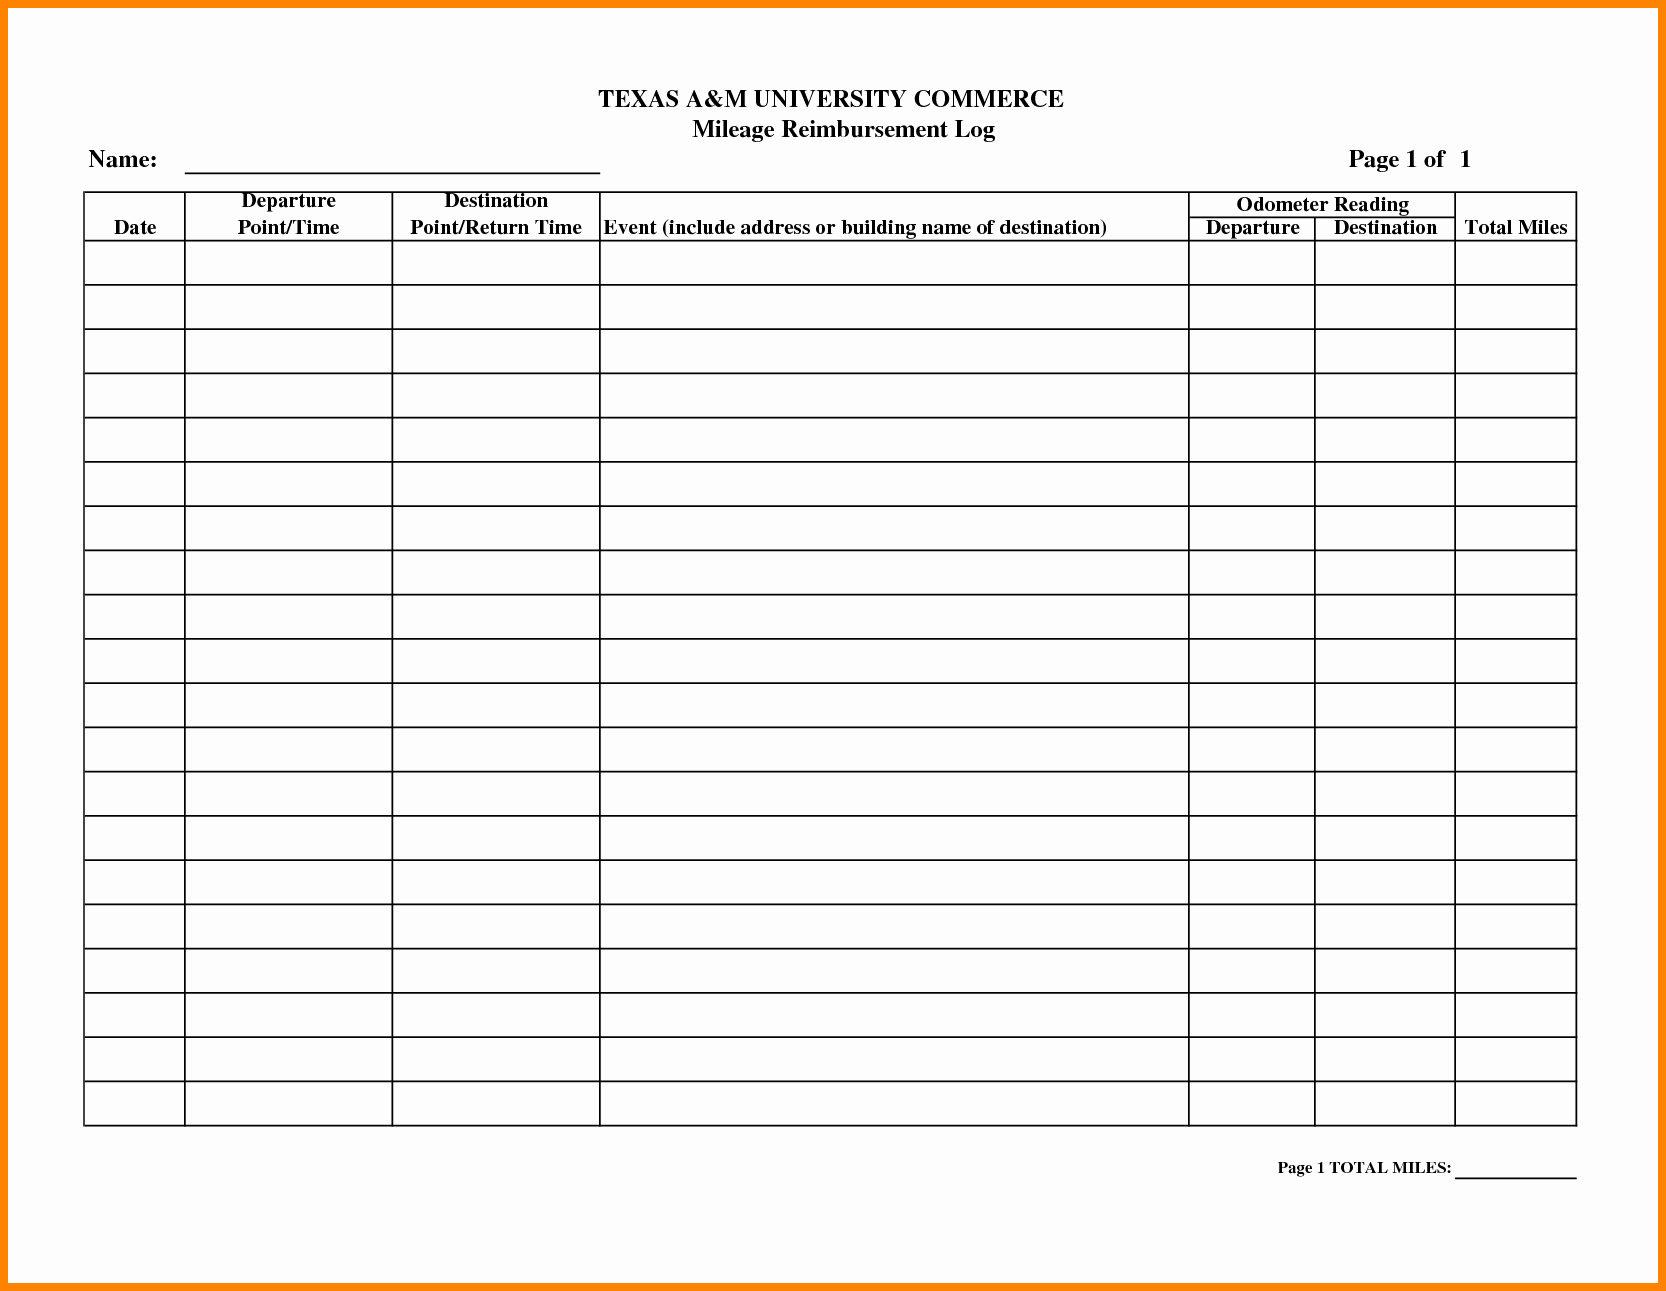 Mileage Reimbursement form Pdf Best Of Mileage Reimbursement forms